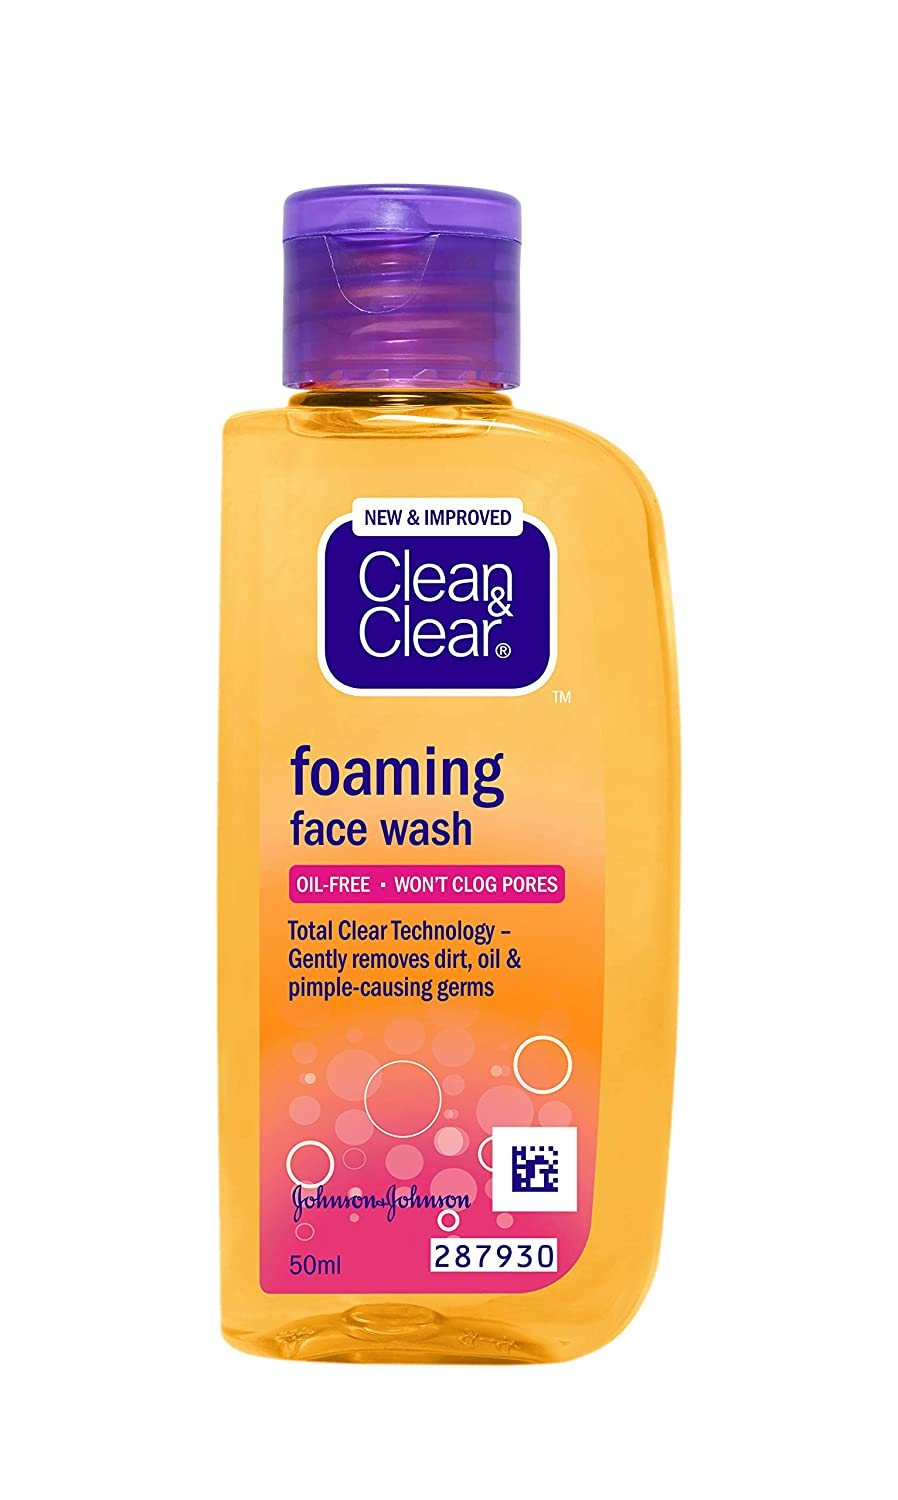 CLEAN & CLEAR FOAMING FACWASH